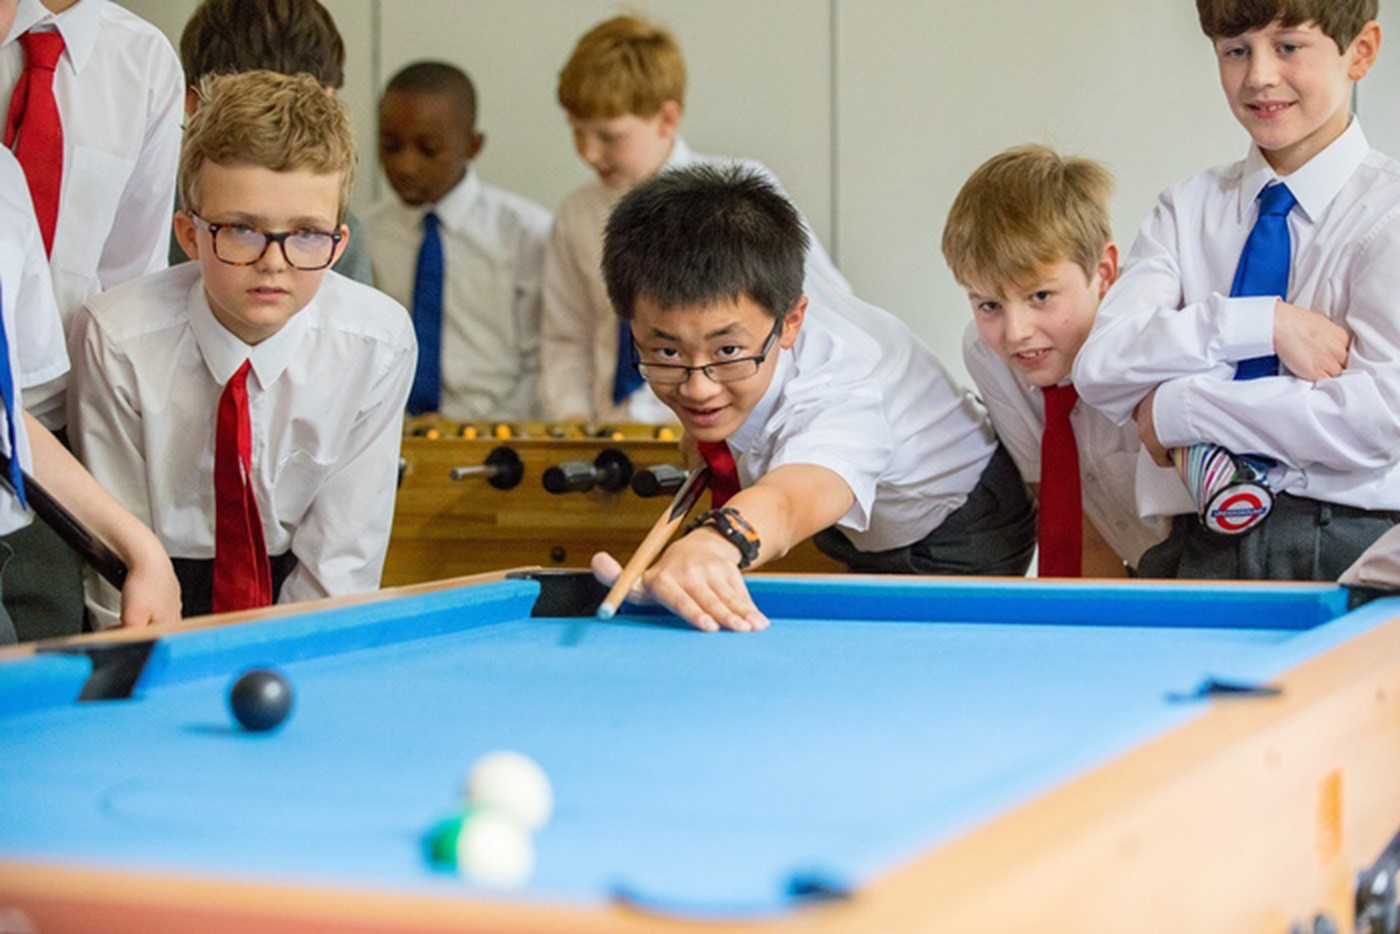 choristers-playing-pool.jpg